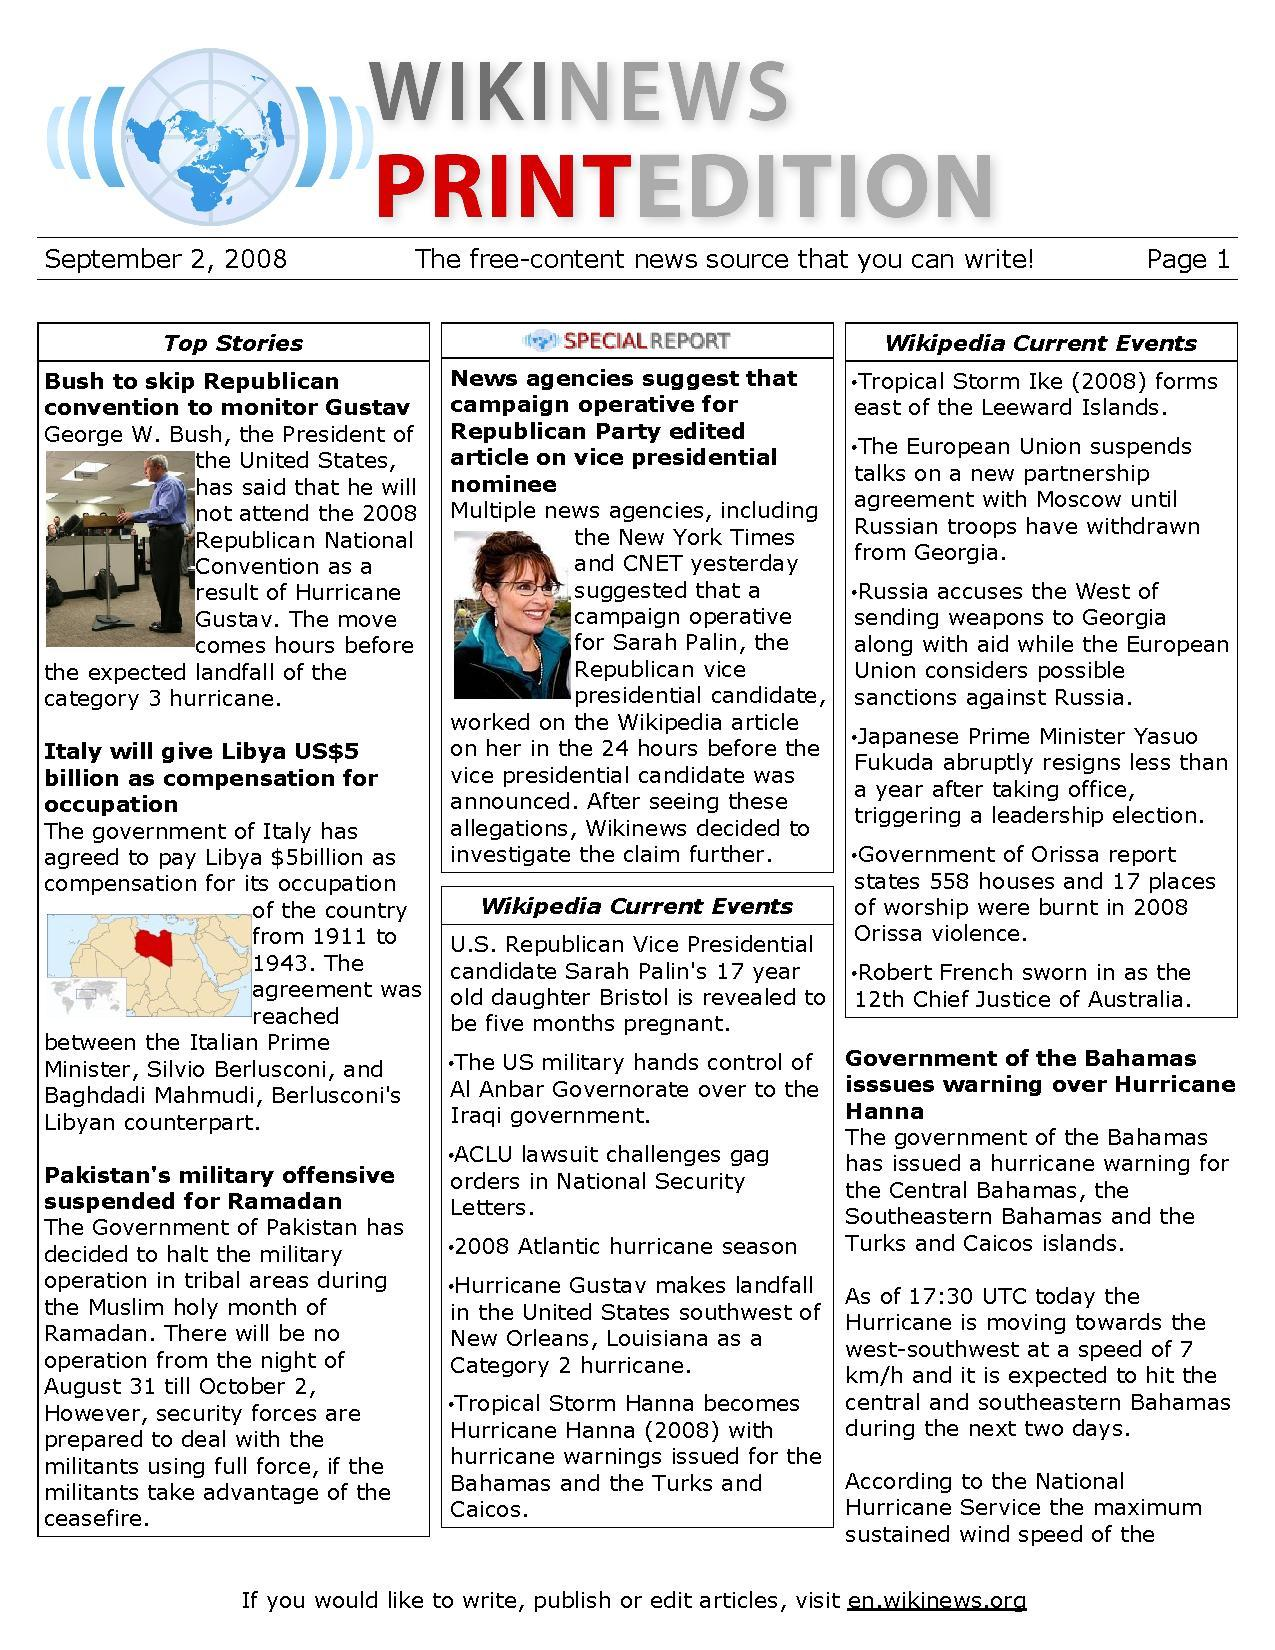 Special pdf cnet complete edition